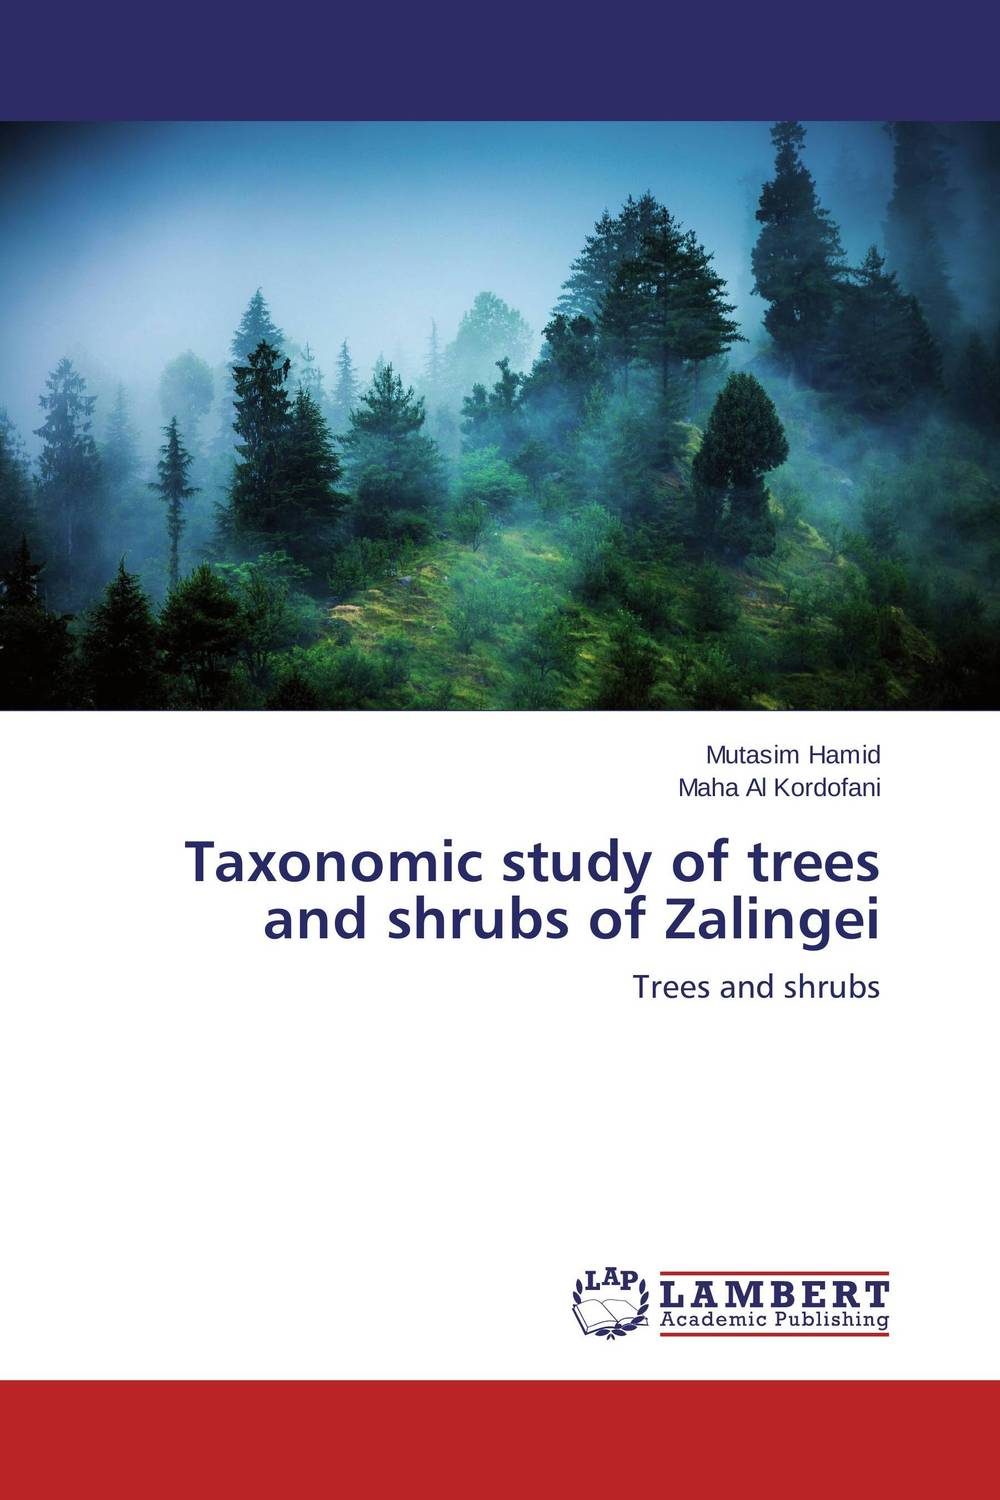 Taxonomic study of trees and shrubs of Zalingei the trees trees the garden of jane delawney lp